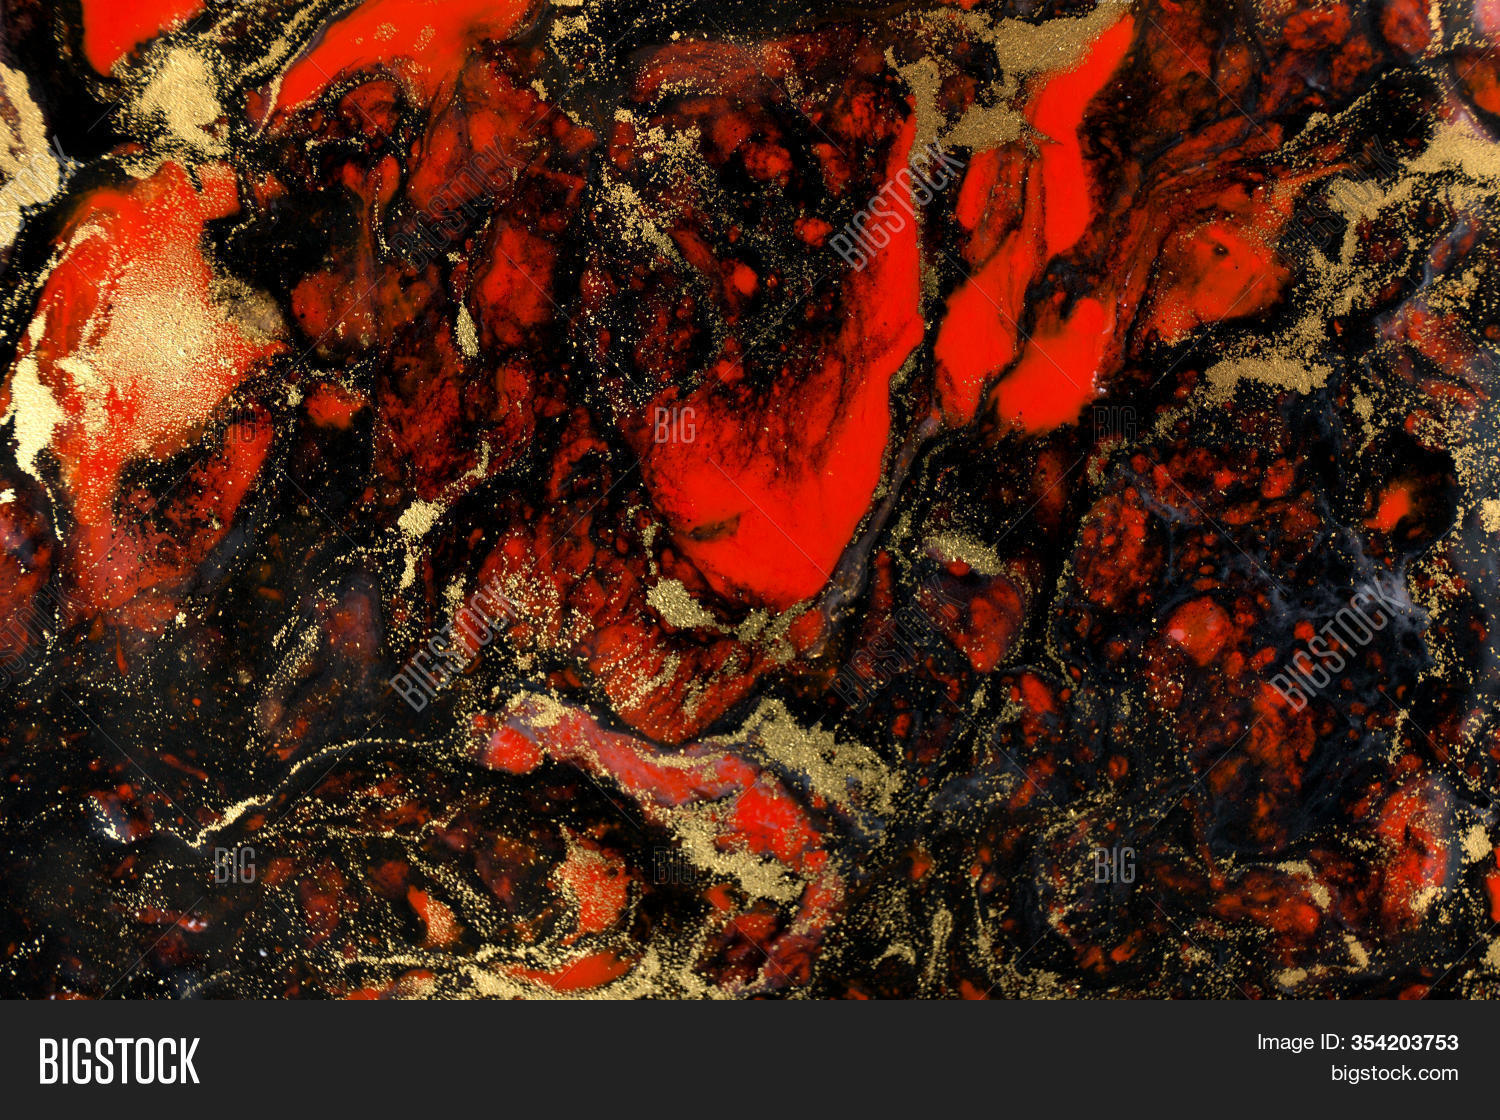 Red Black Gold Paint Image Photo Free Trial Bigstock